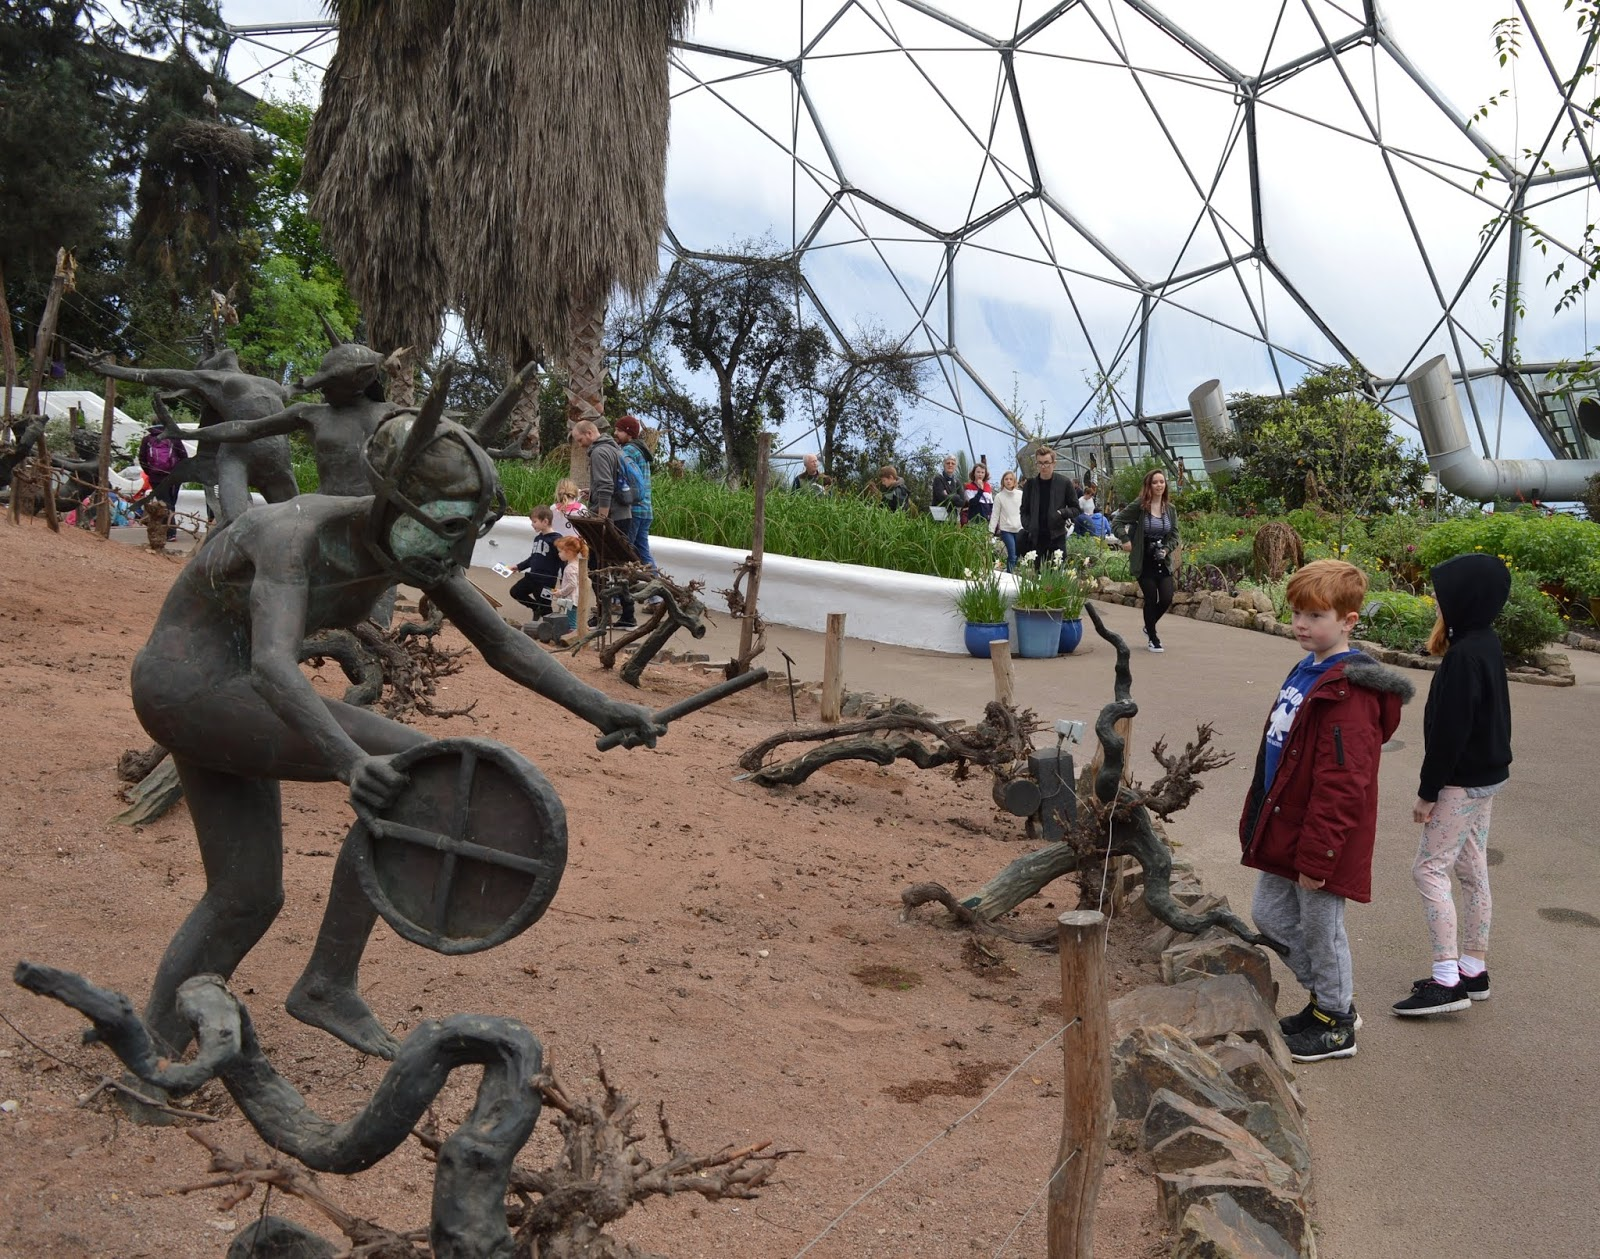 10 Reasons to Visit the Eden Project in Winter  - inside the Mediterranean biome